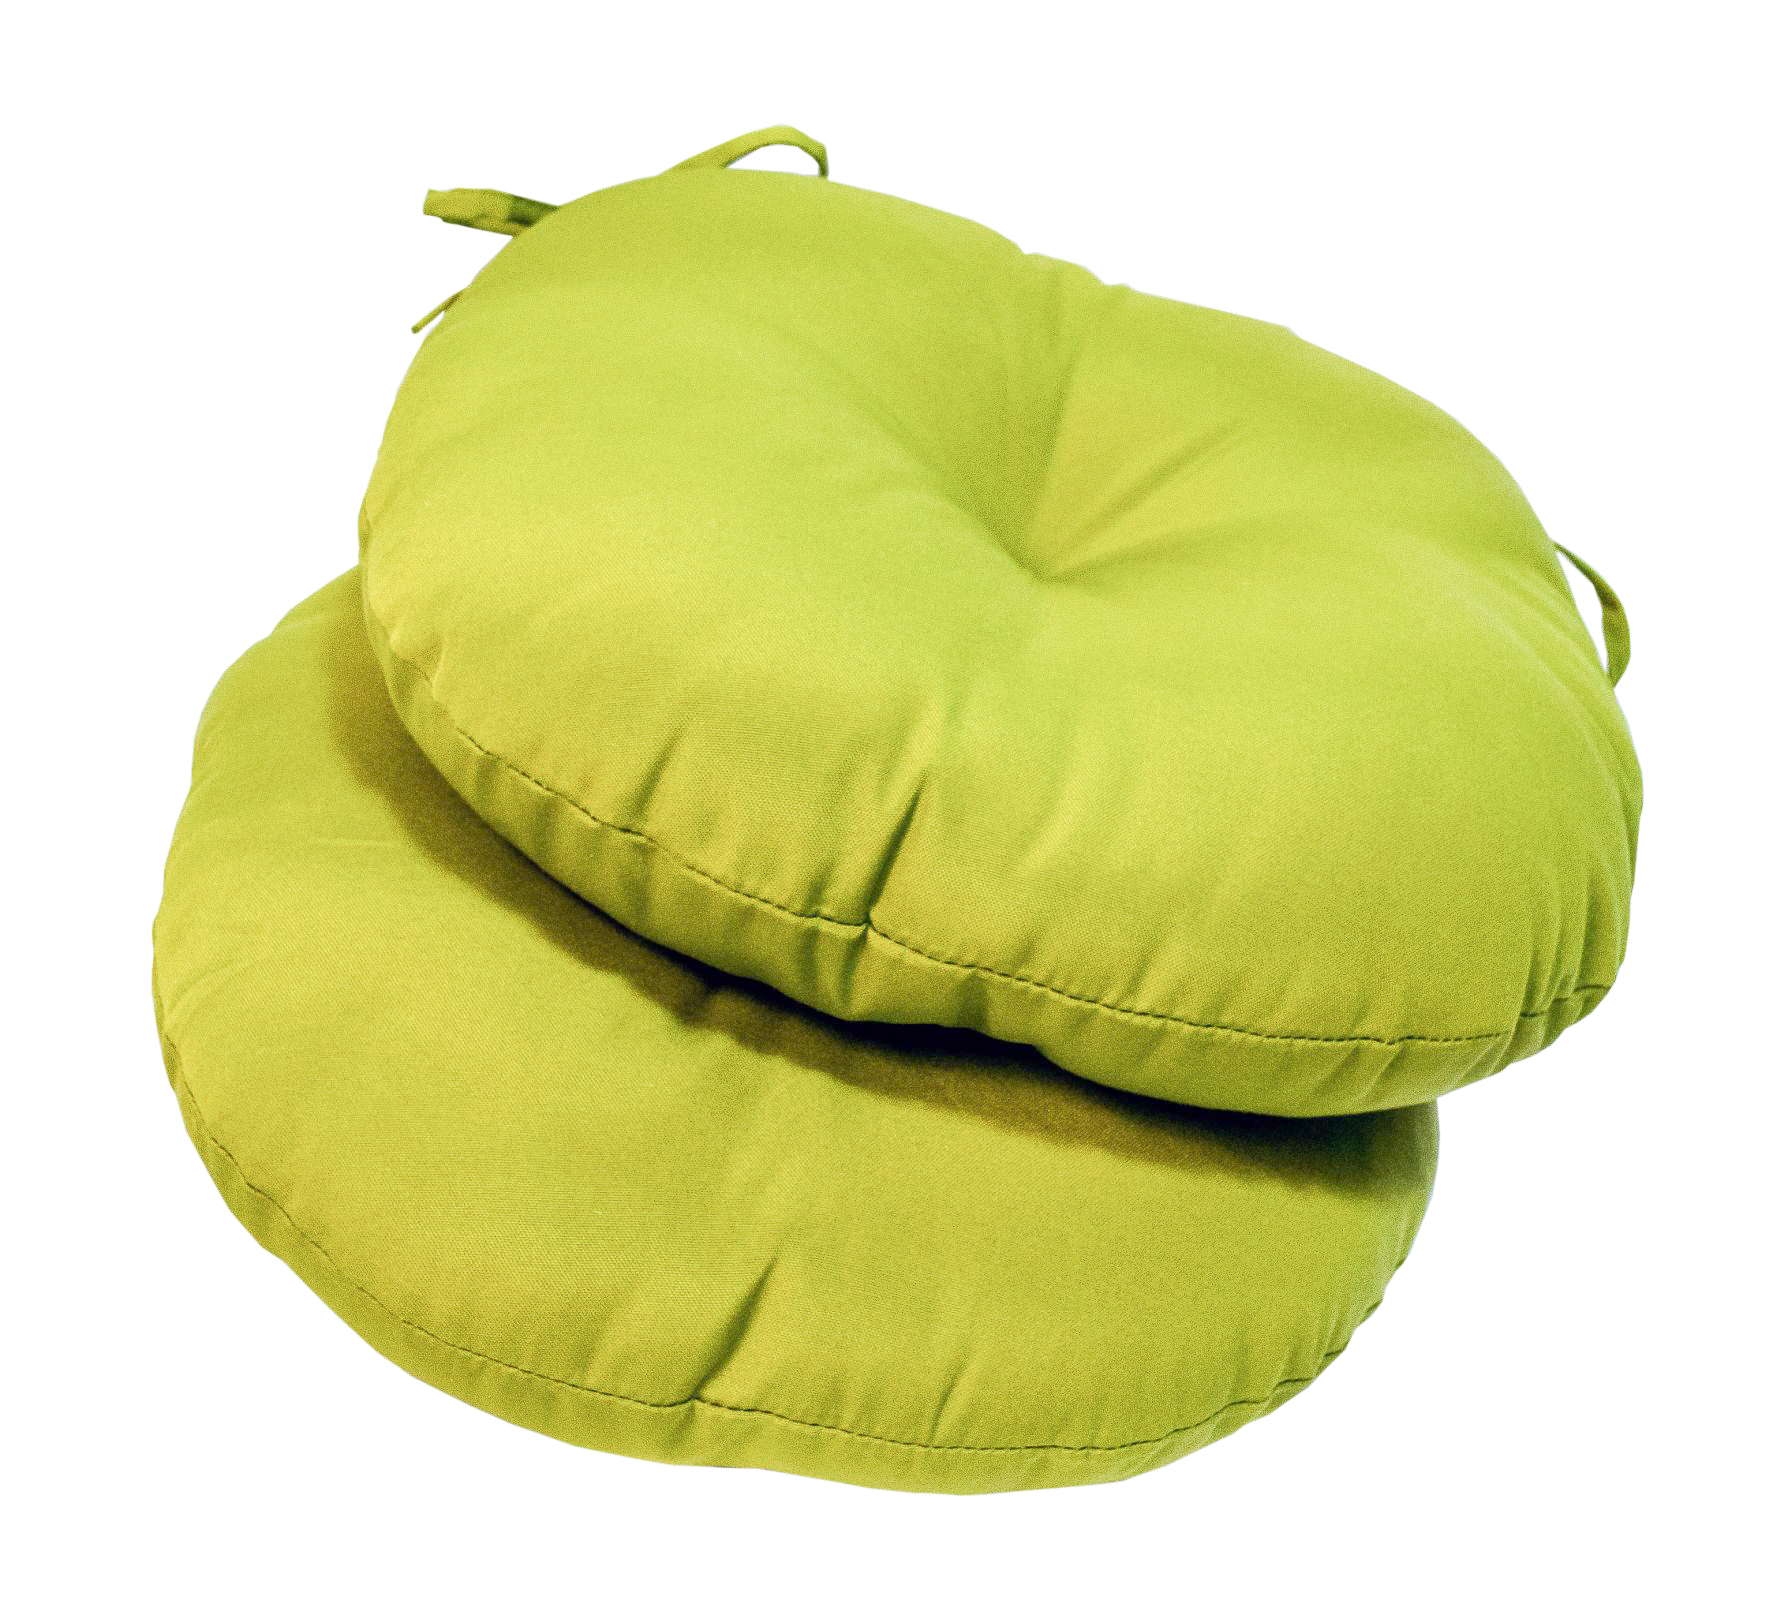 round cushions for outdoor chairs zero gravity chair weight limit greendale home fashions 18 in bistro